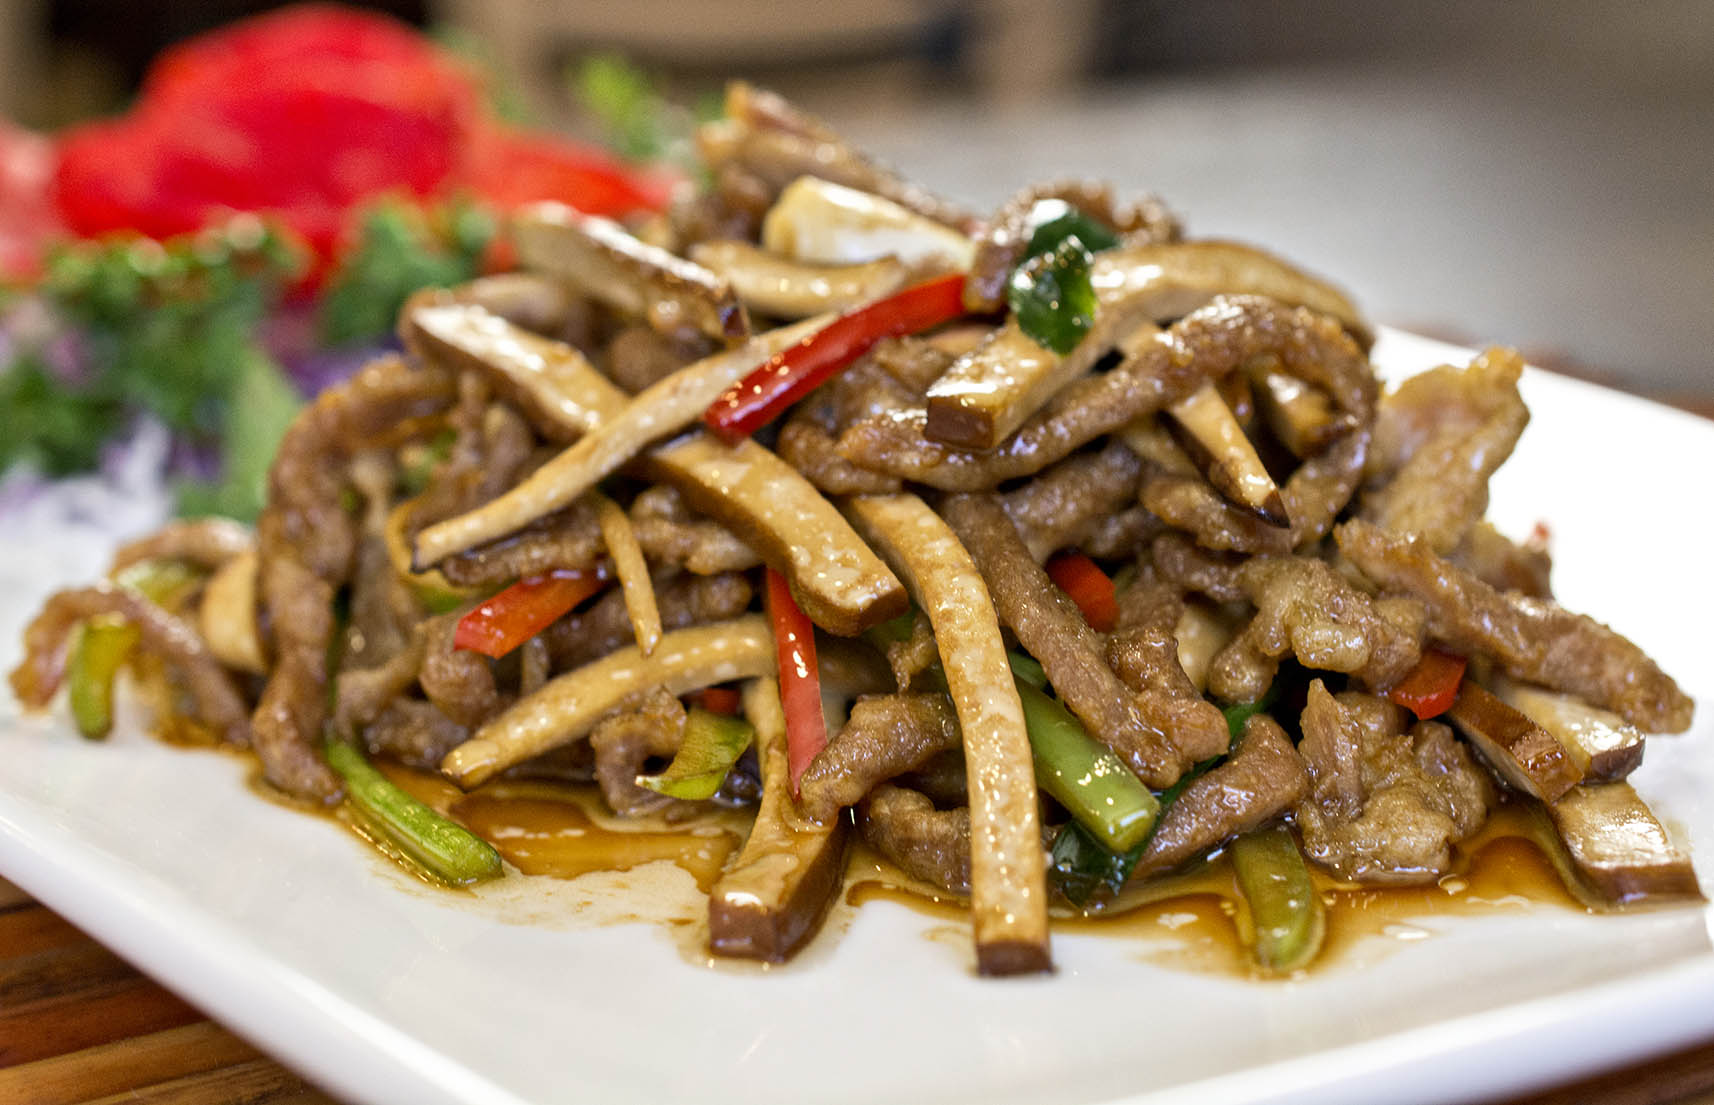 Menu china village shredded pork sauteed with dry bean curd forumfinder Gallery